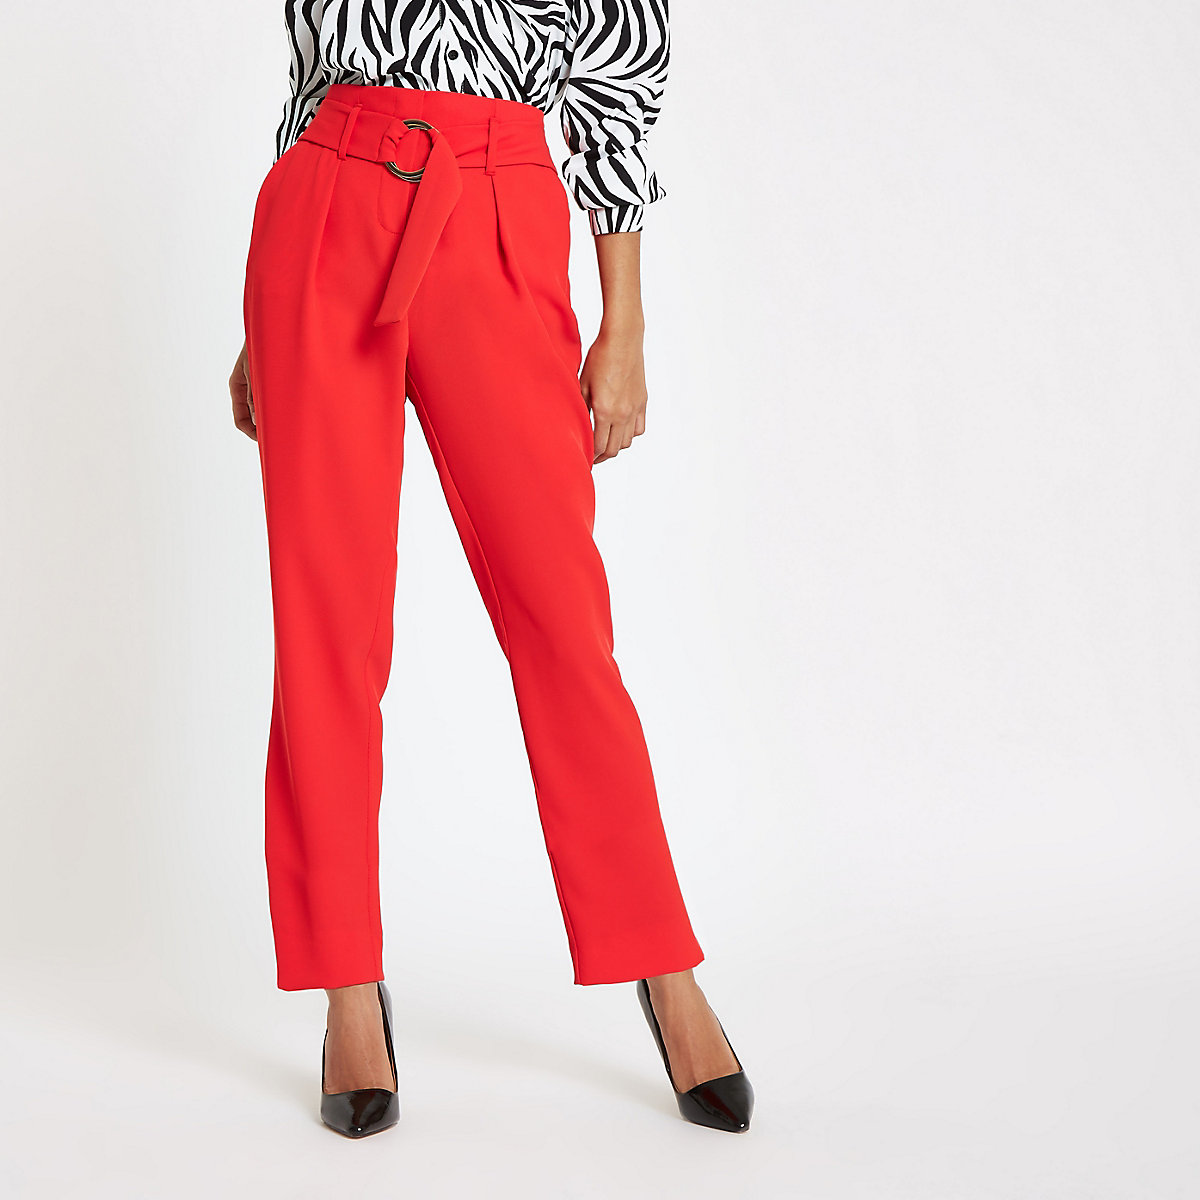 Petite red tie waist peg trousers